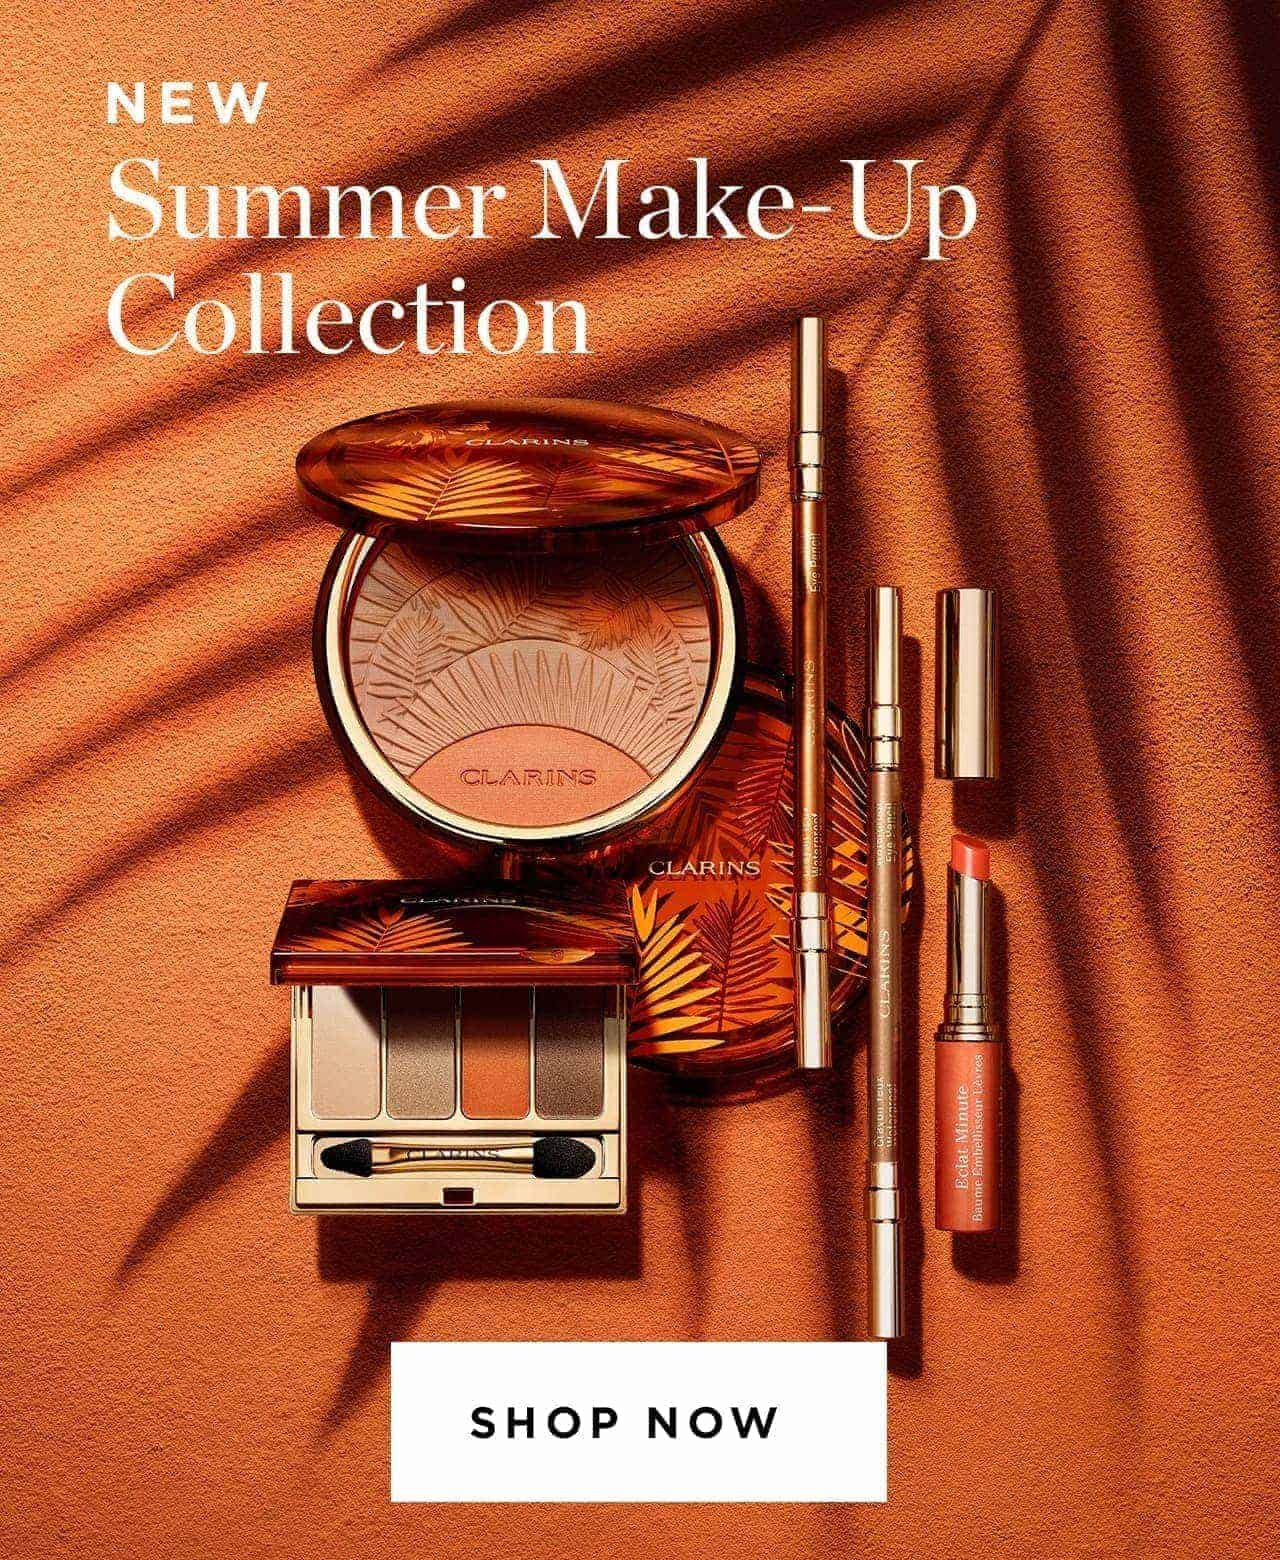 Summer make-up collection